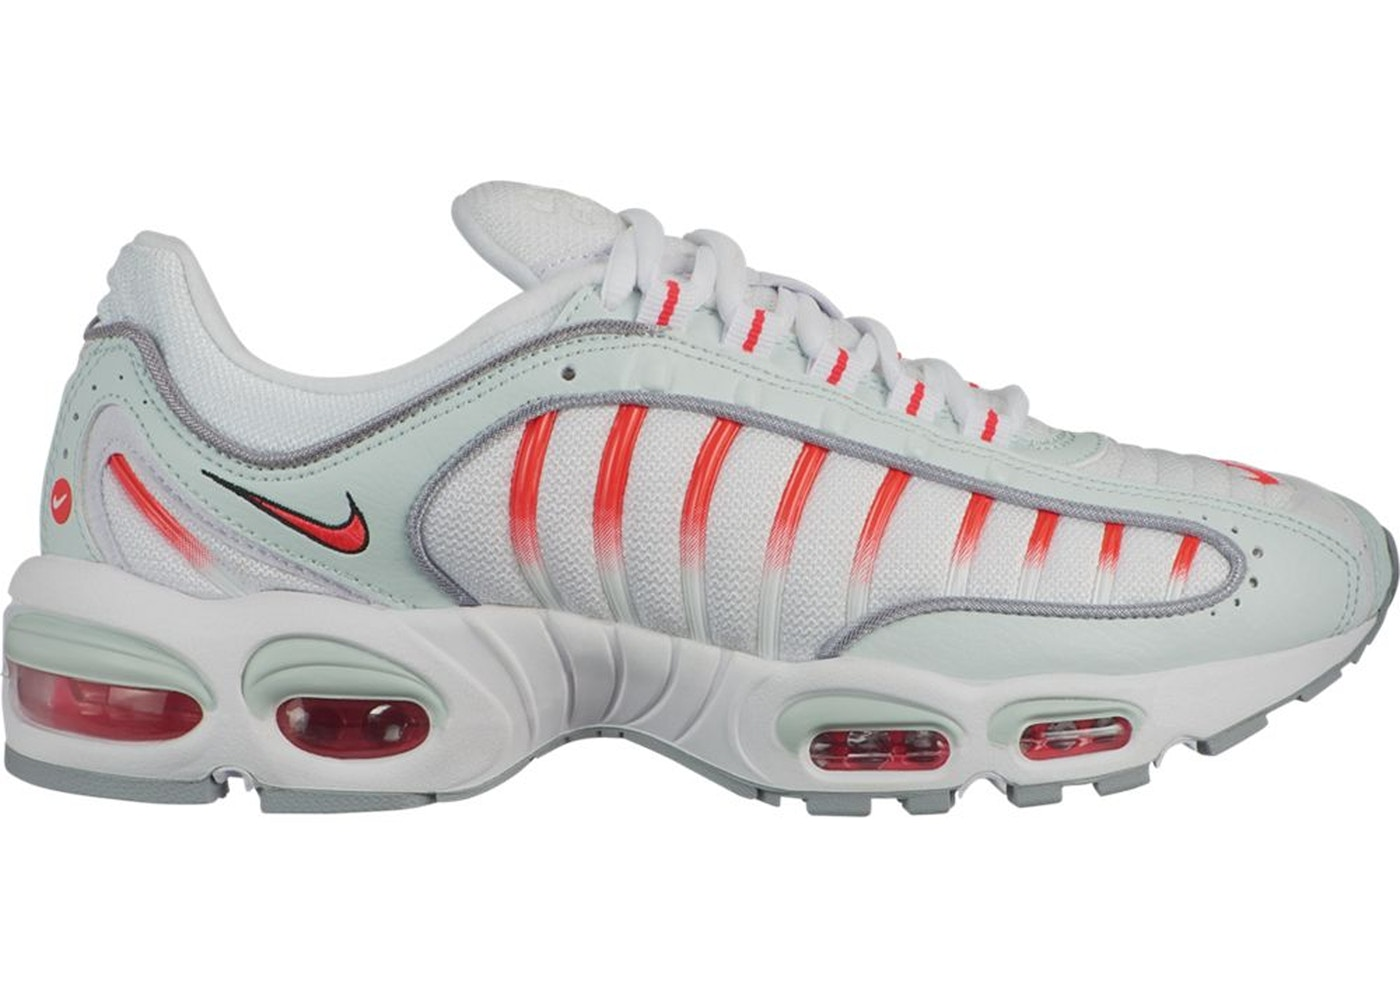 73ea4f6fd0ec Nike-Air-Max-Tailwind-4-Red-Orbit.png?fit=fill&bg=FFFFFF&w=700&h=500&auto=format,compress&trim=color&q=90&dpr=2&updated_at=1554427747